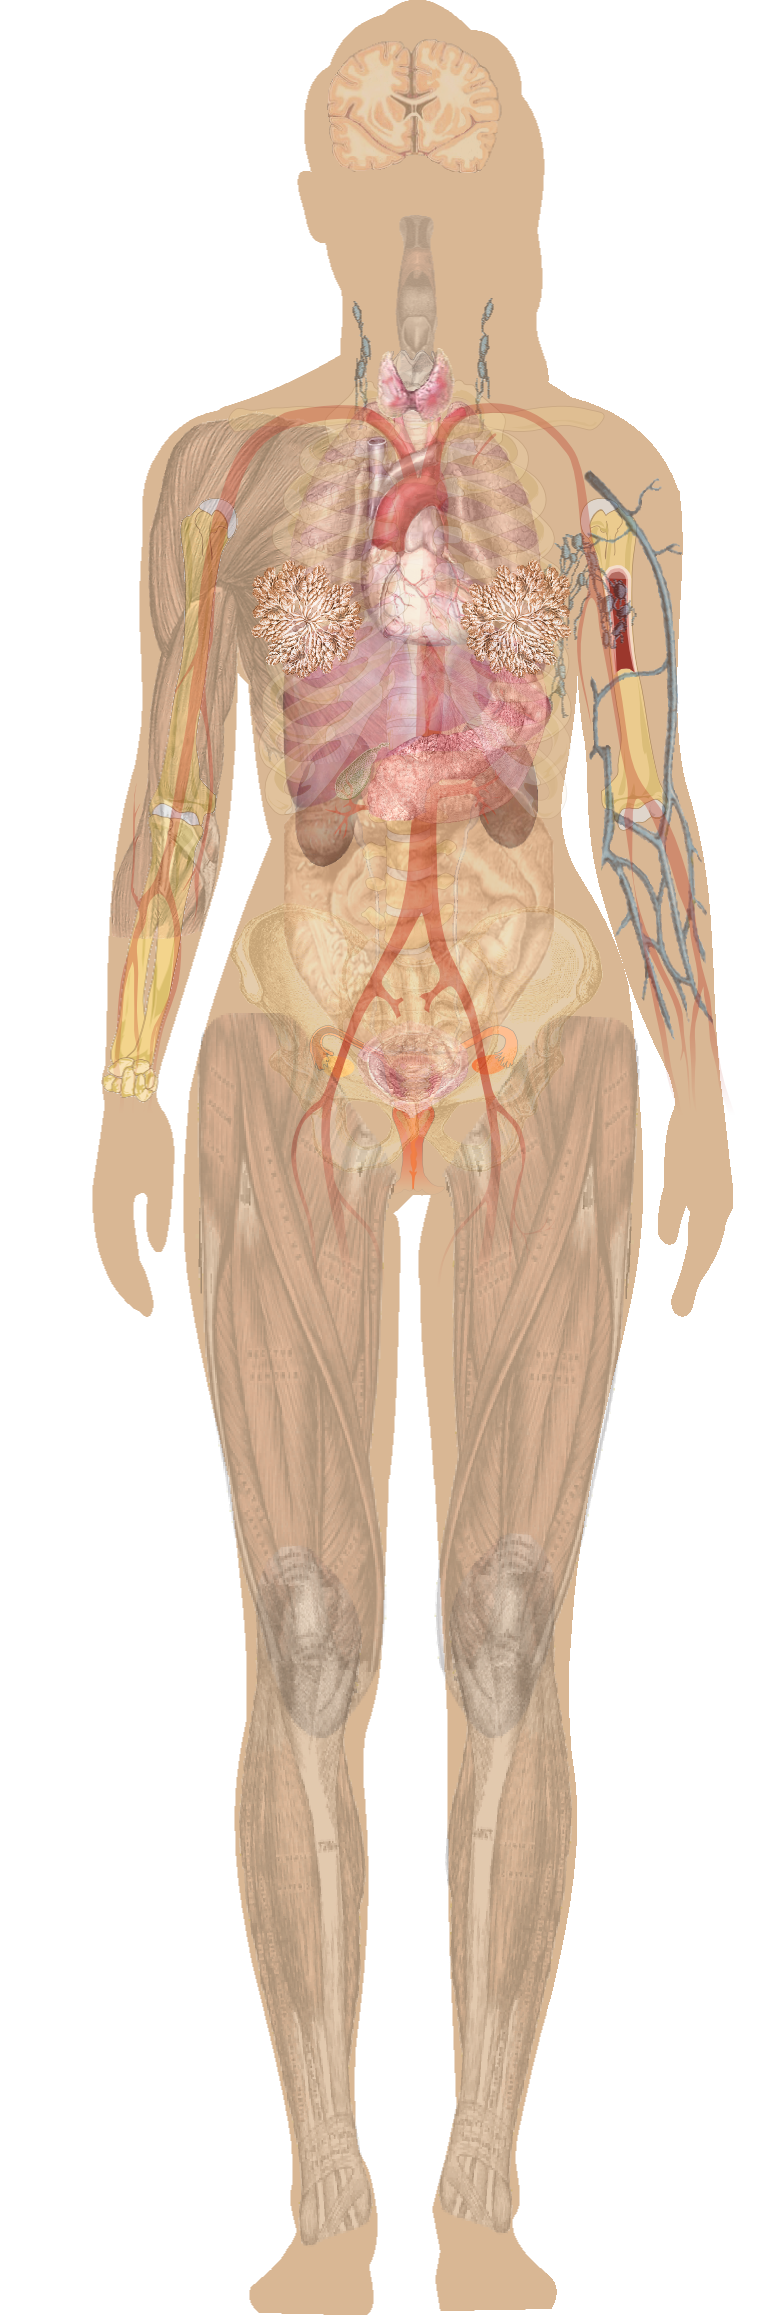 Diagram of human body organs in female